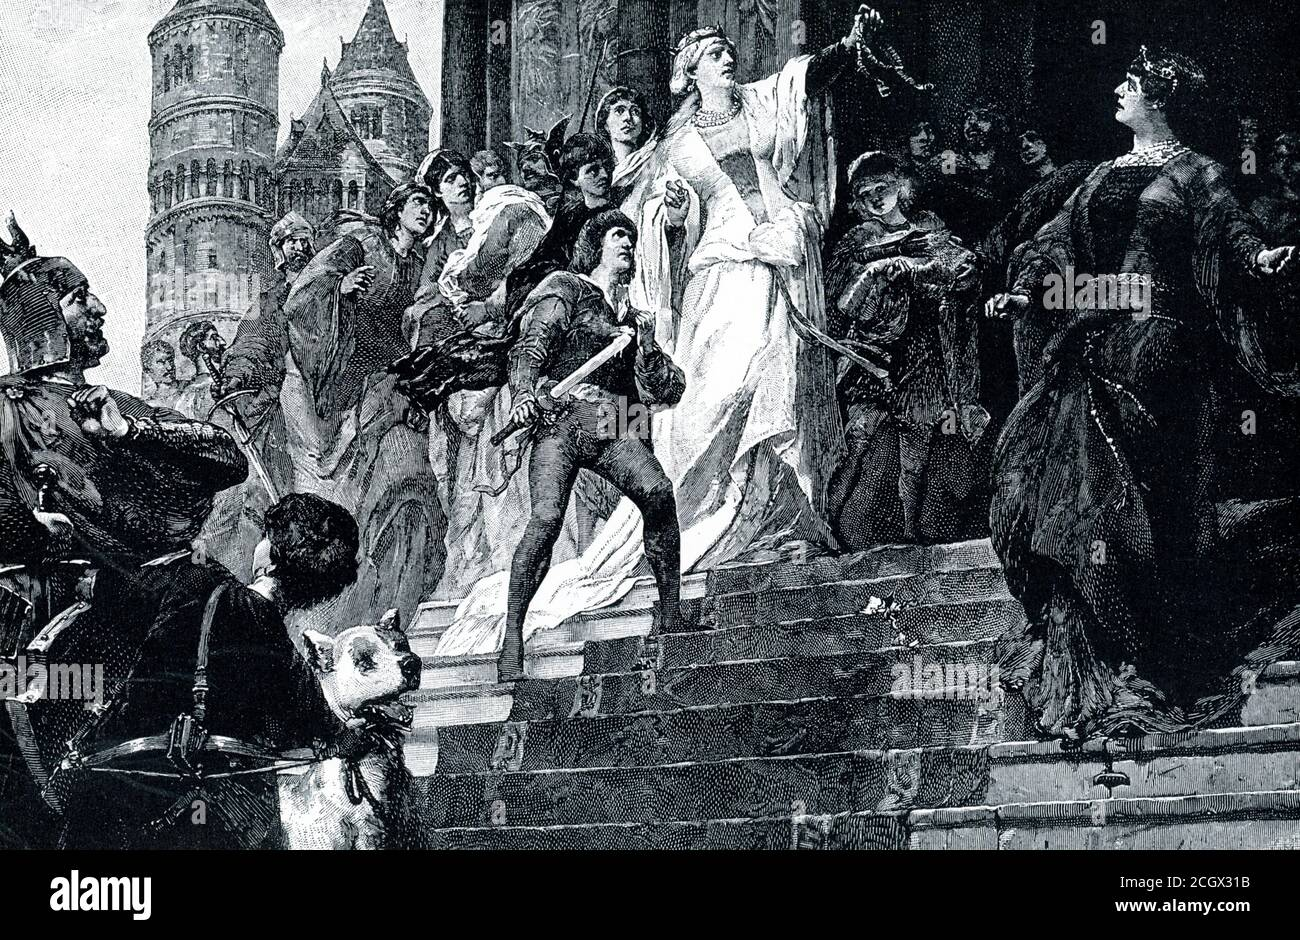 Quarrel of Brunhild and Kriemhild. This scene is from the Nibelung legend of Siegfried. The rival queens met in procession before the door of the great Worms cathedral, and each asserted her right to enter first. Brunhild was of superhuman strength and famed as a warrior. Kriemhild boasted of the victory her husband Siegfried had won over the mighty queen, and displayed the ring and girdle which he had torn from her. From this quarrel arose all the strife and disaster of the legend — Siegfried's death and the massacre of the Burgundians. Stock Photo